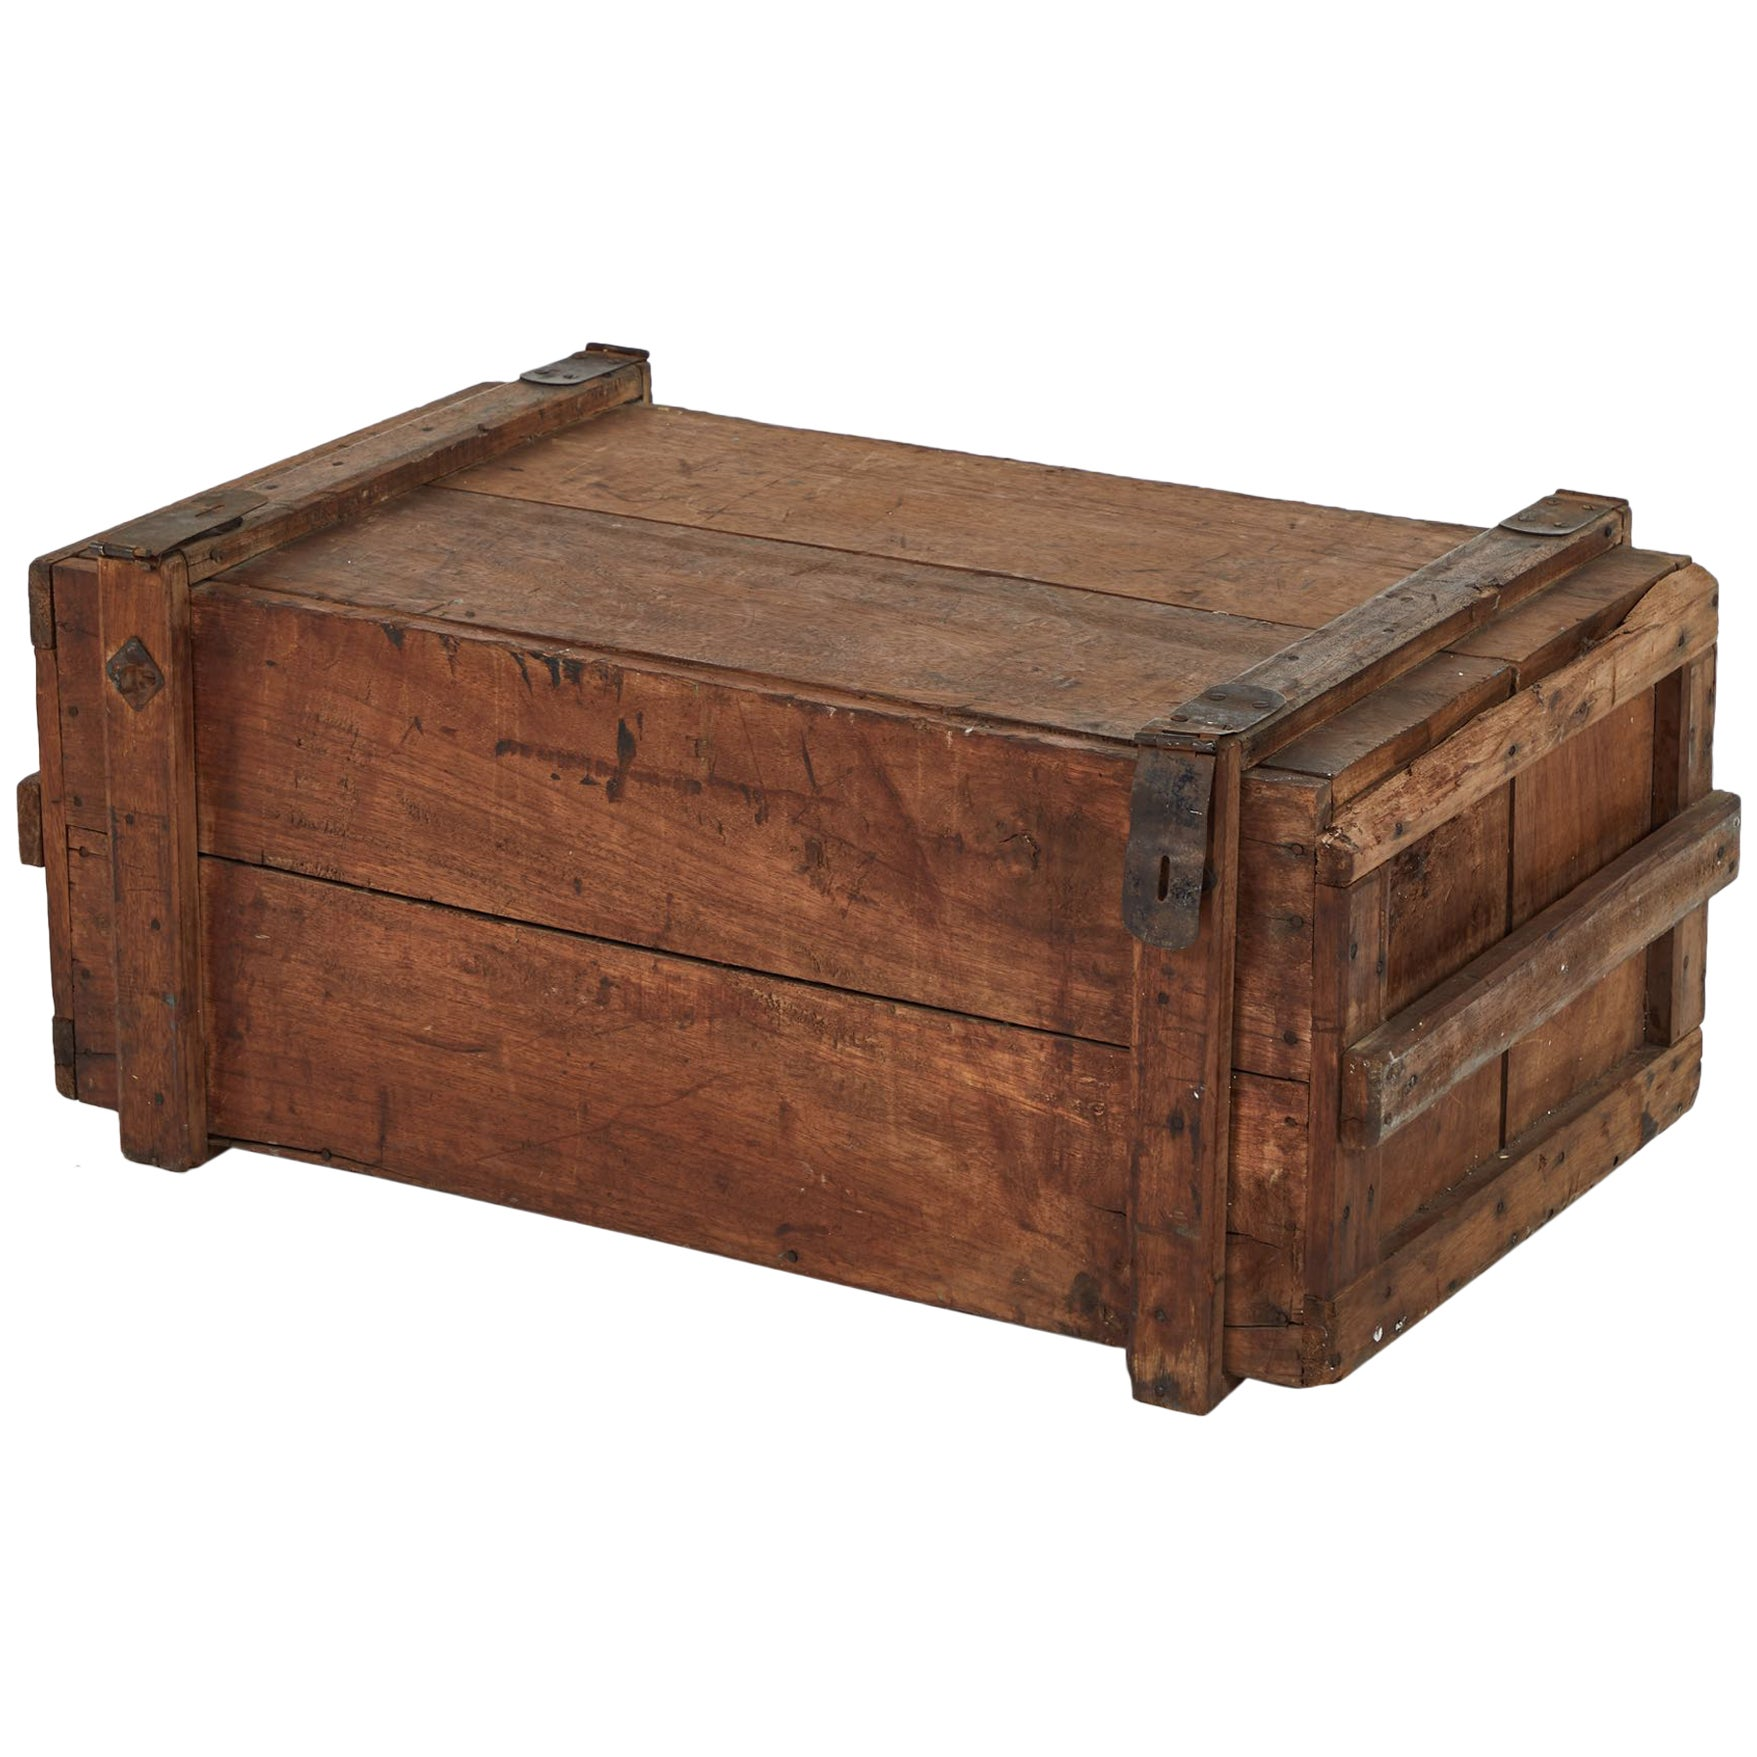 19th Century Rustic Chest as a Coffee Table